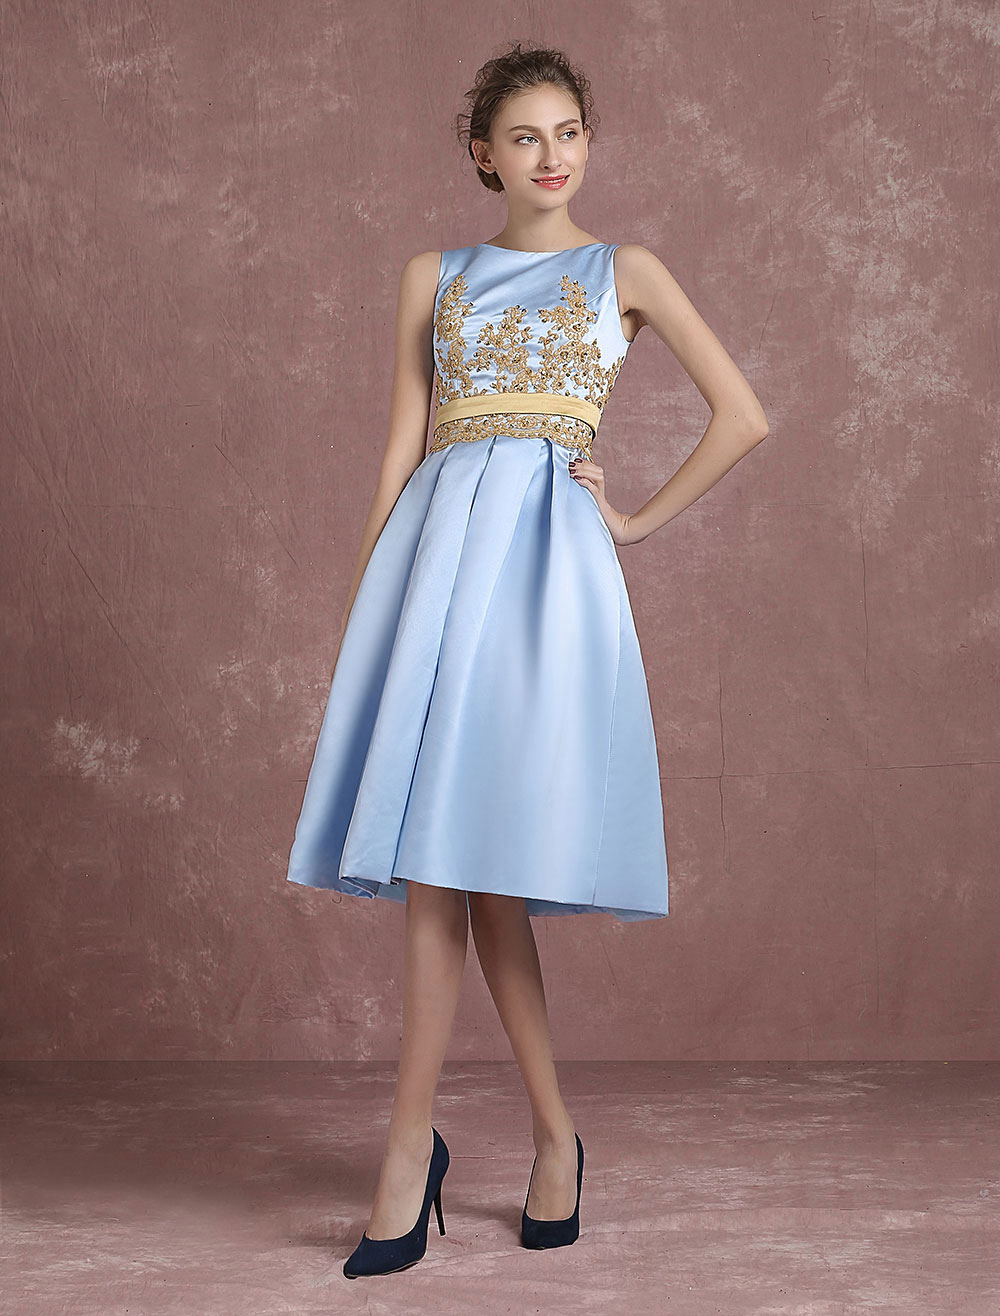 Satin Cocktail Dress Baby Blue Knee Length Graduation Dress Sequined ...